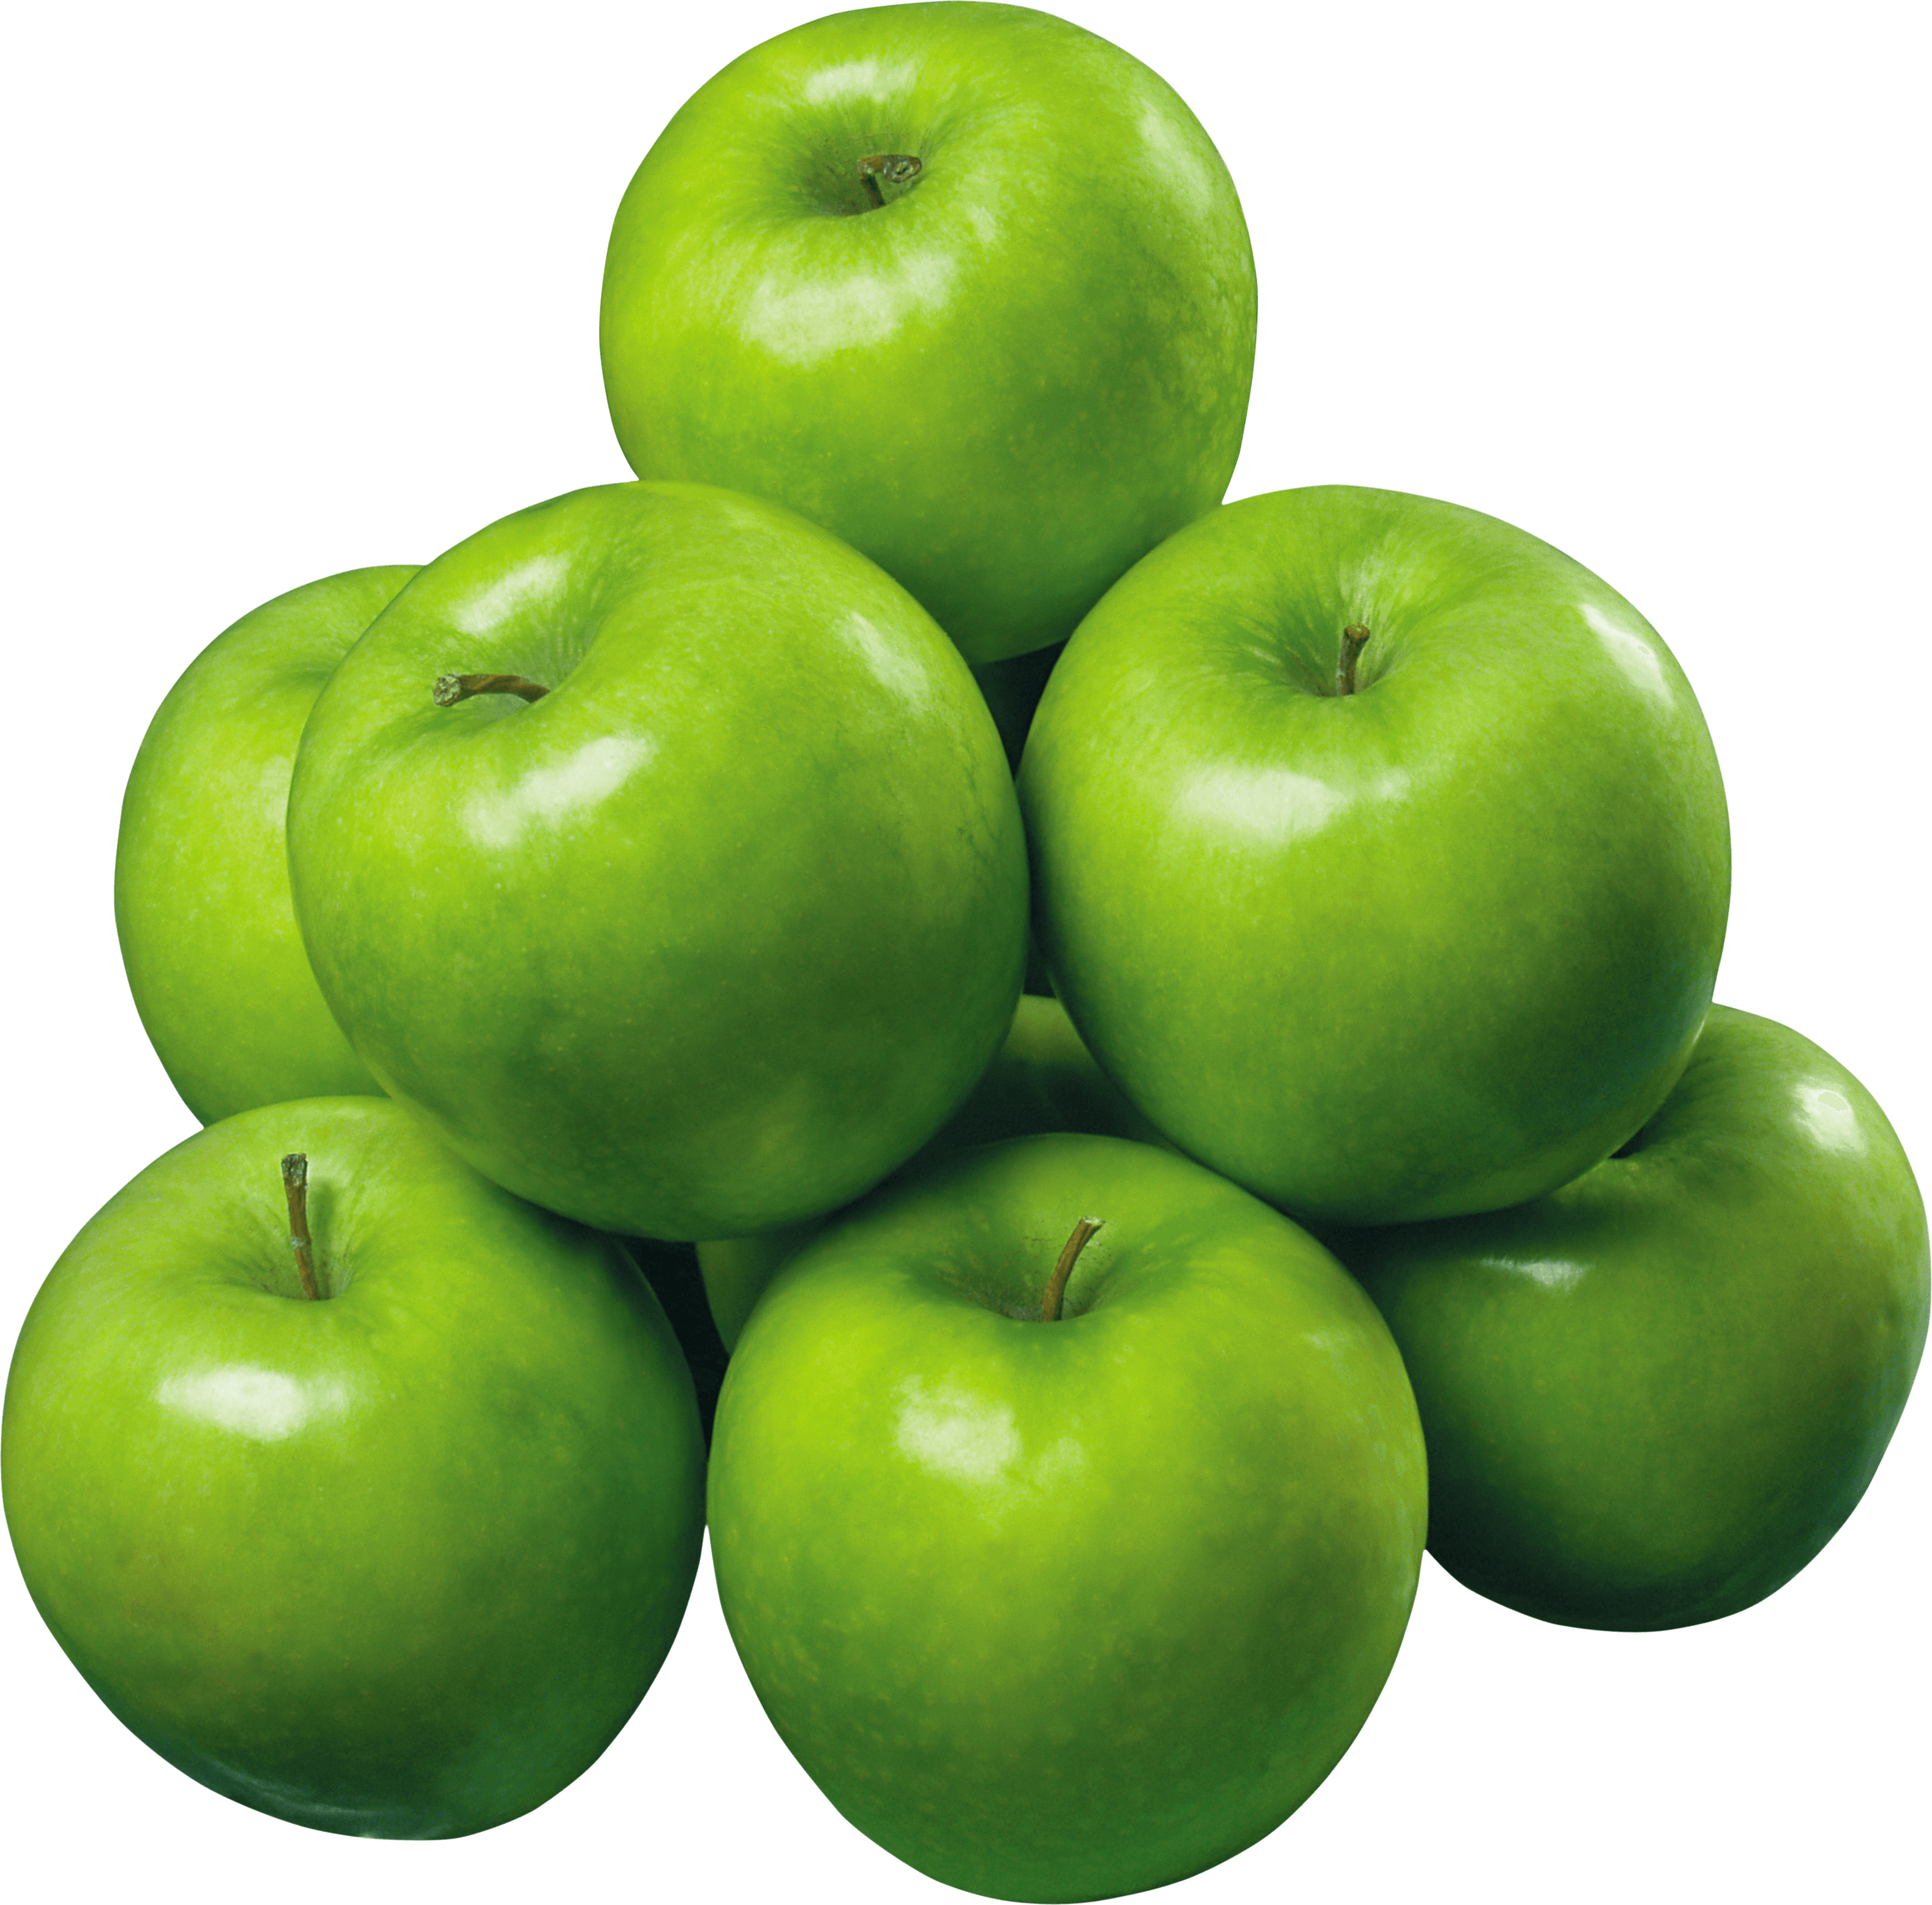 Apples png. Green image